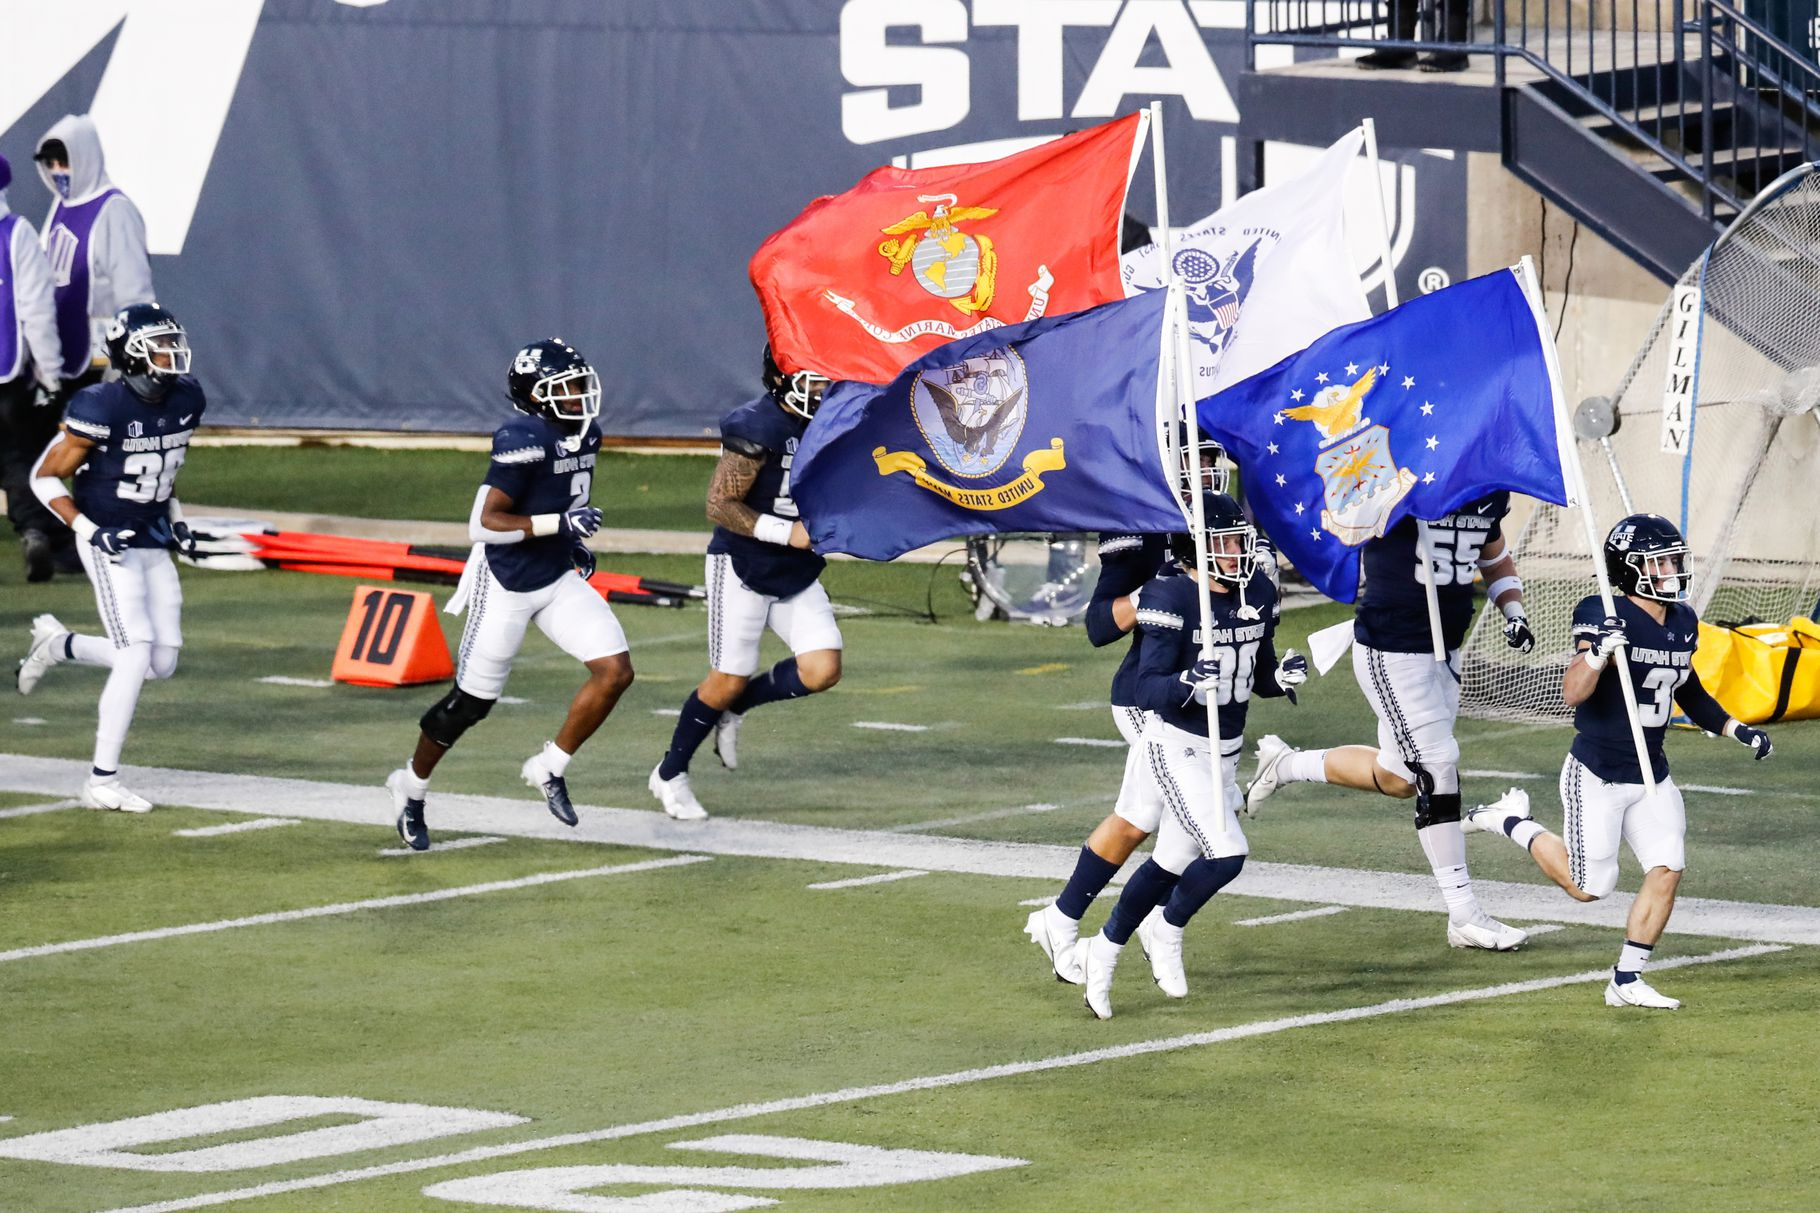 Utah State Aggies players step on the field before a game against the New Mexico Lobos.